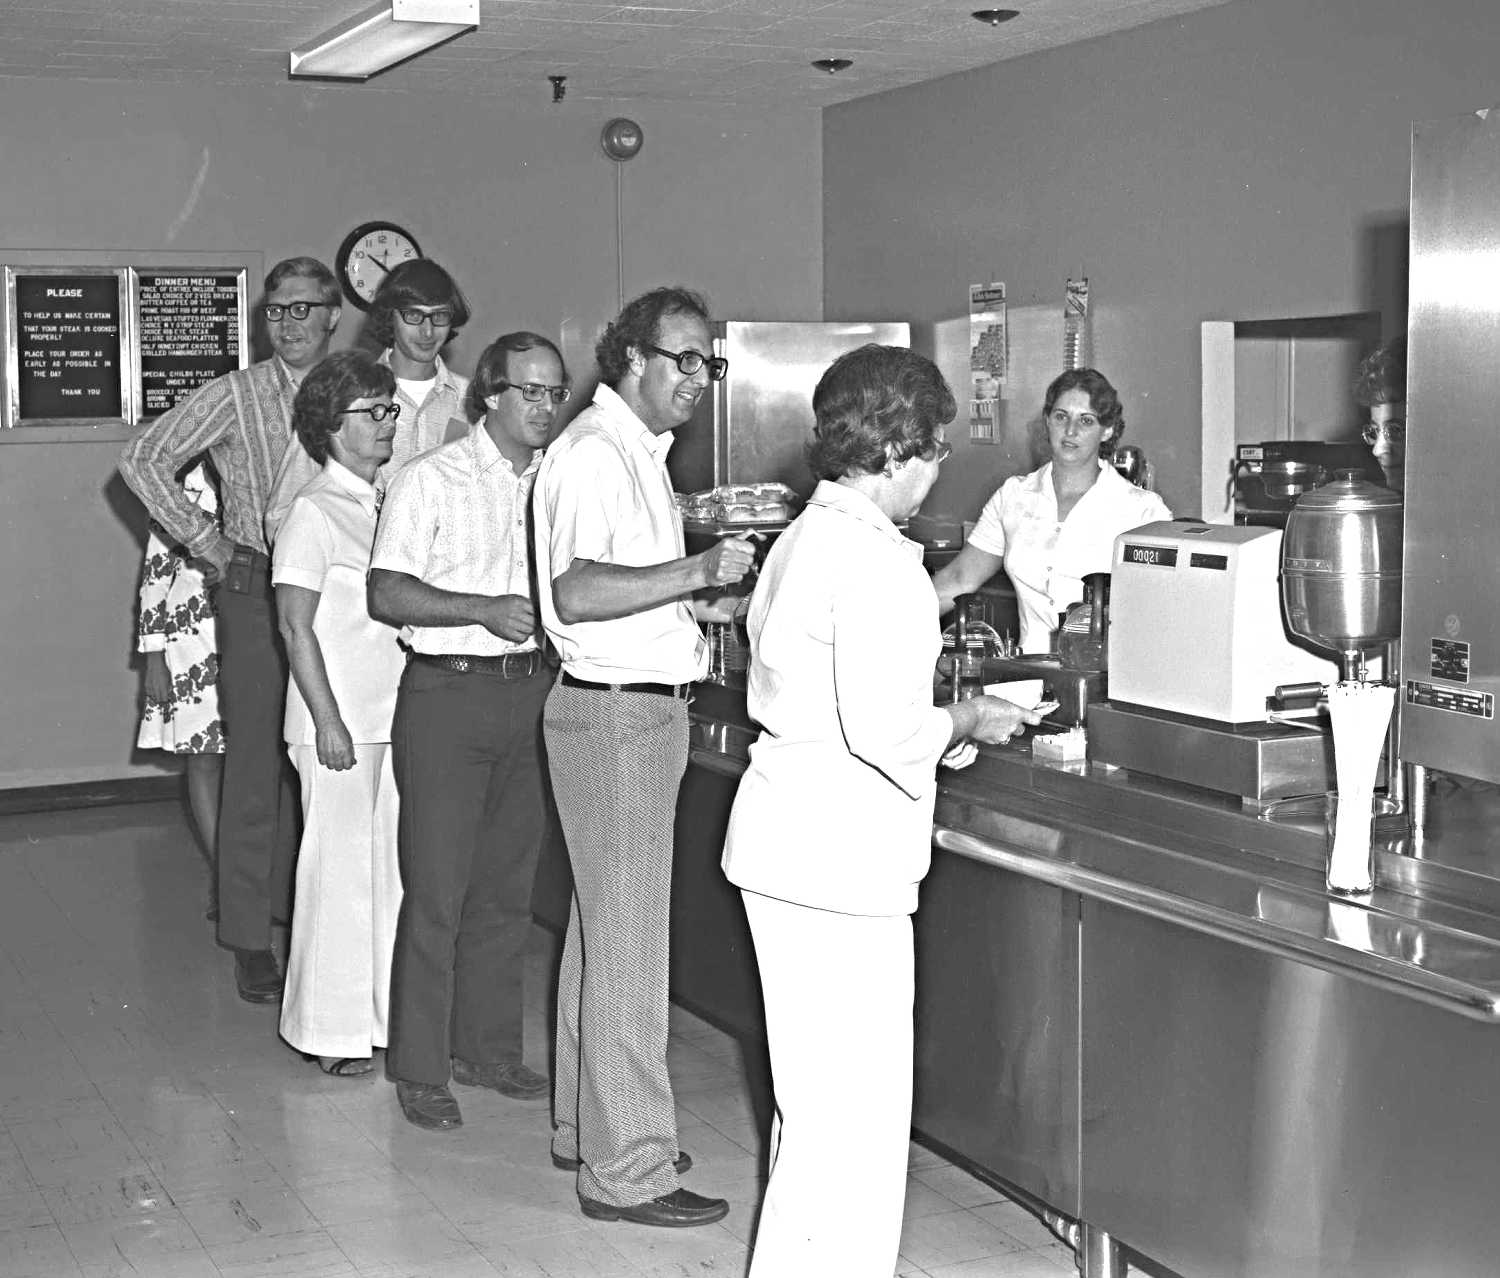 Green Bank Cafeteria, 1977